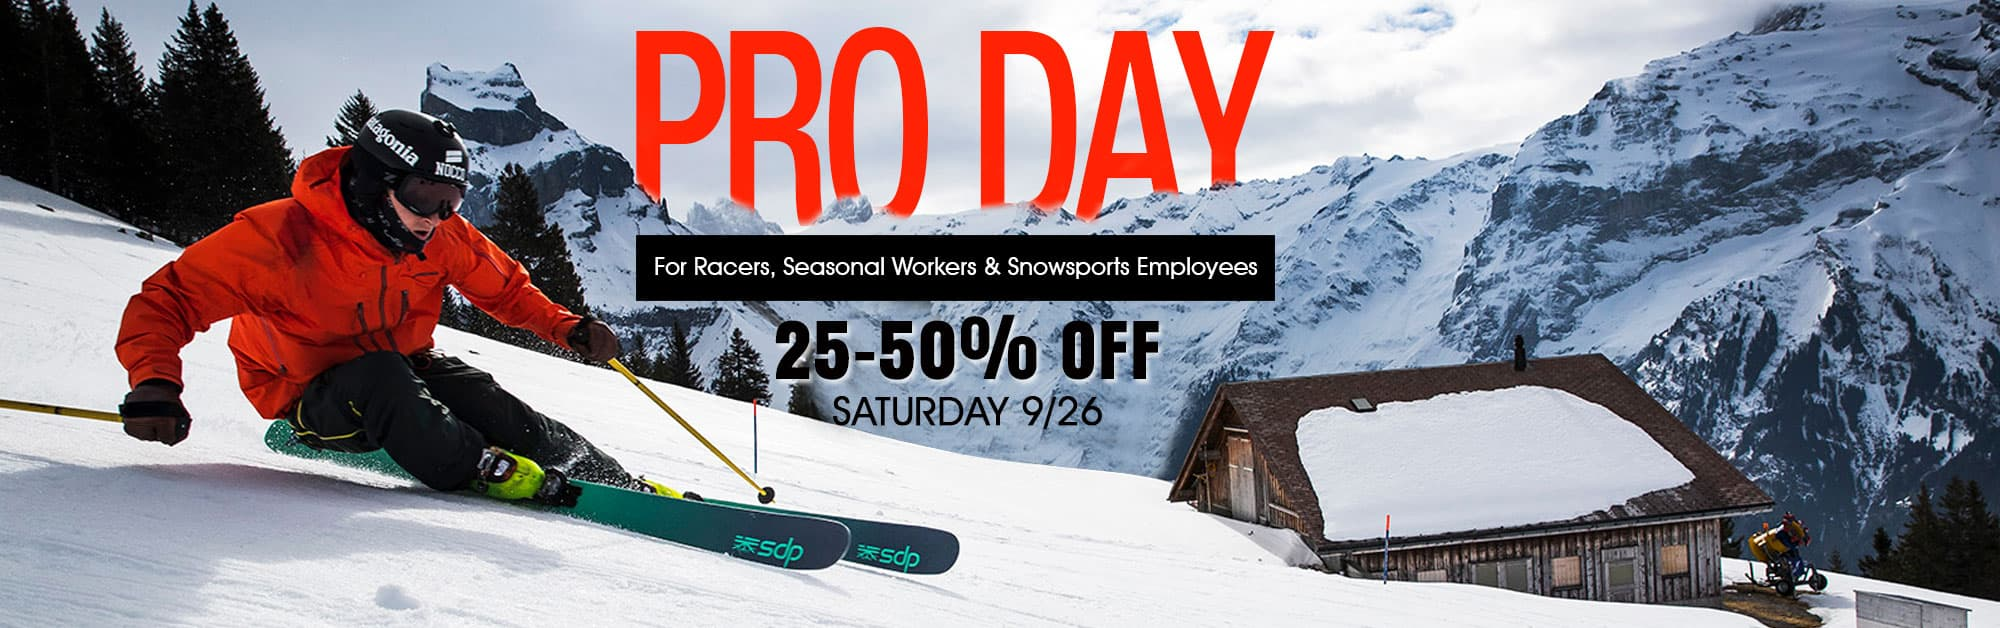 Pro Day 2020- ski Sale at proctor ski in Nashua NH